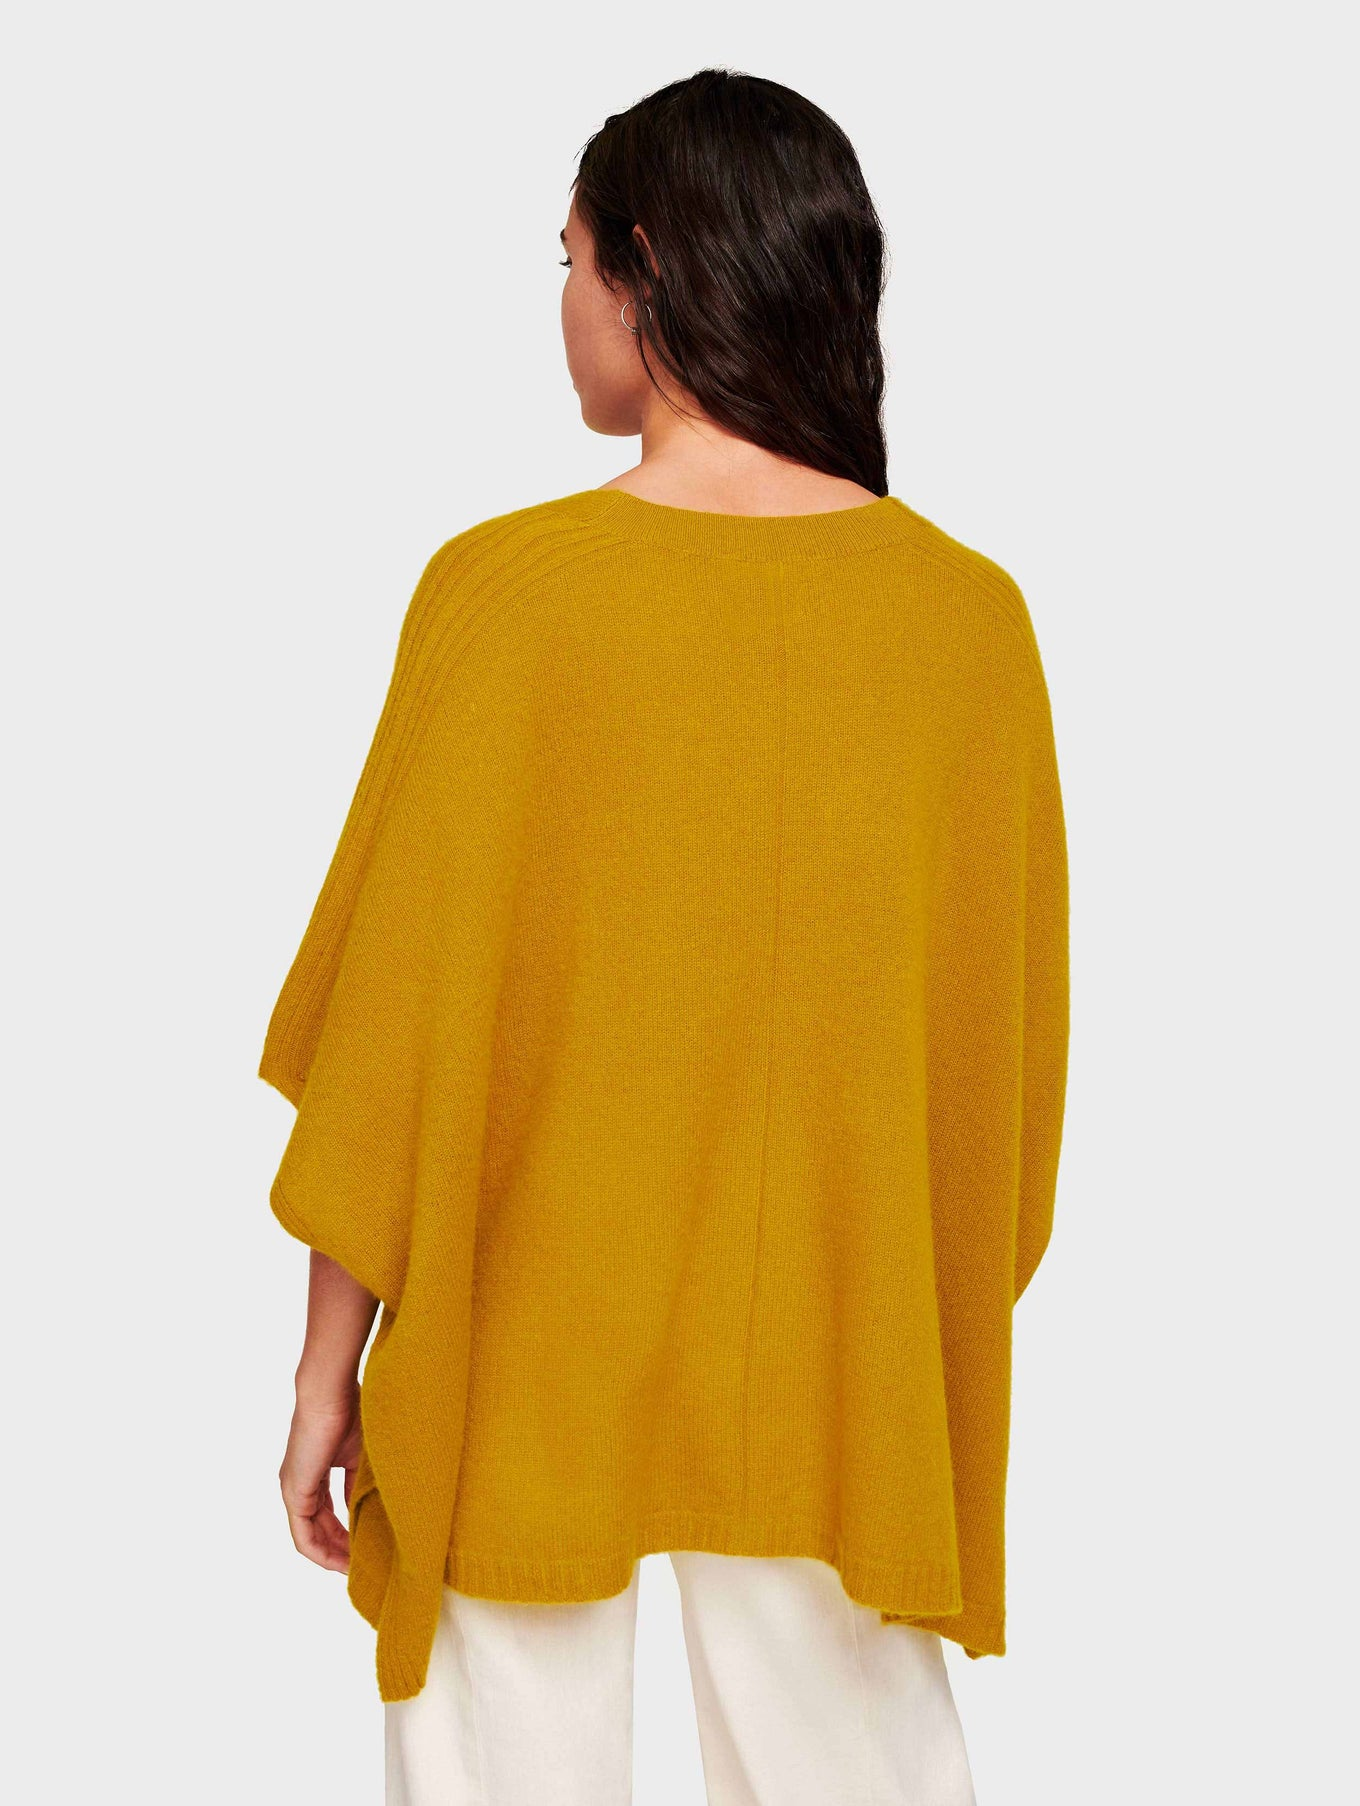 Cashmere V Neck Poncho - Antique Gold - Image 3